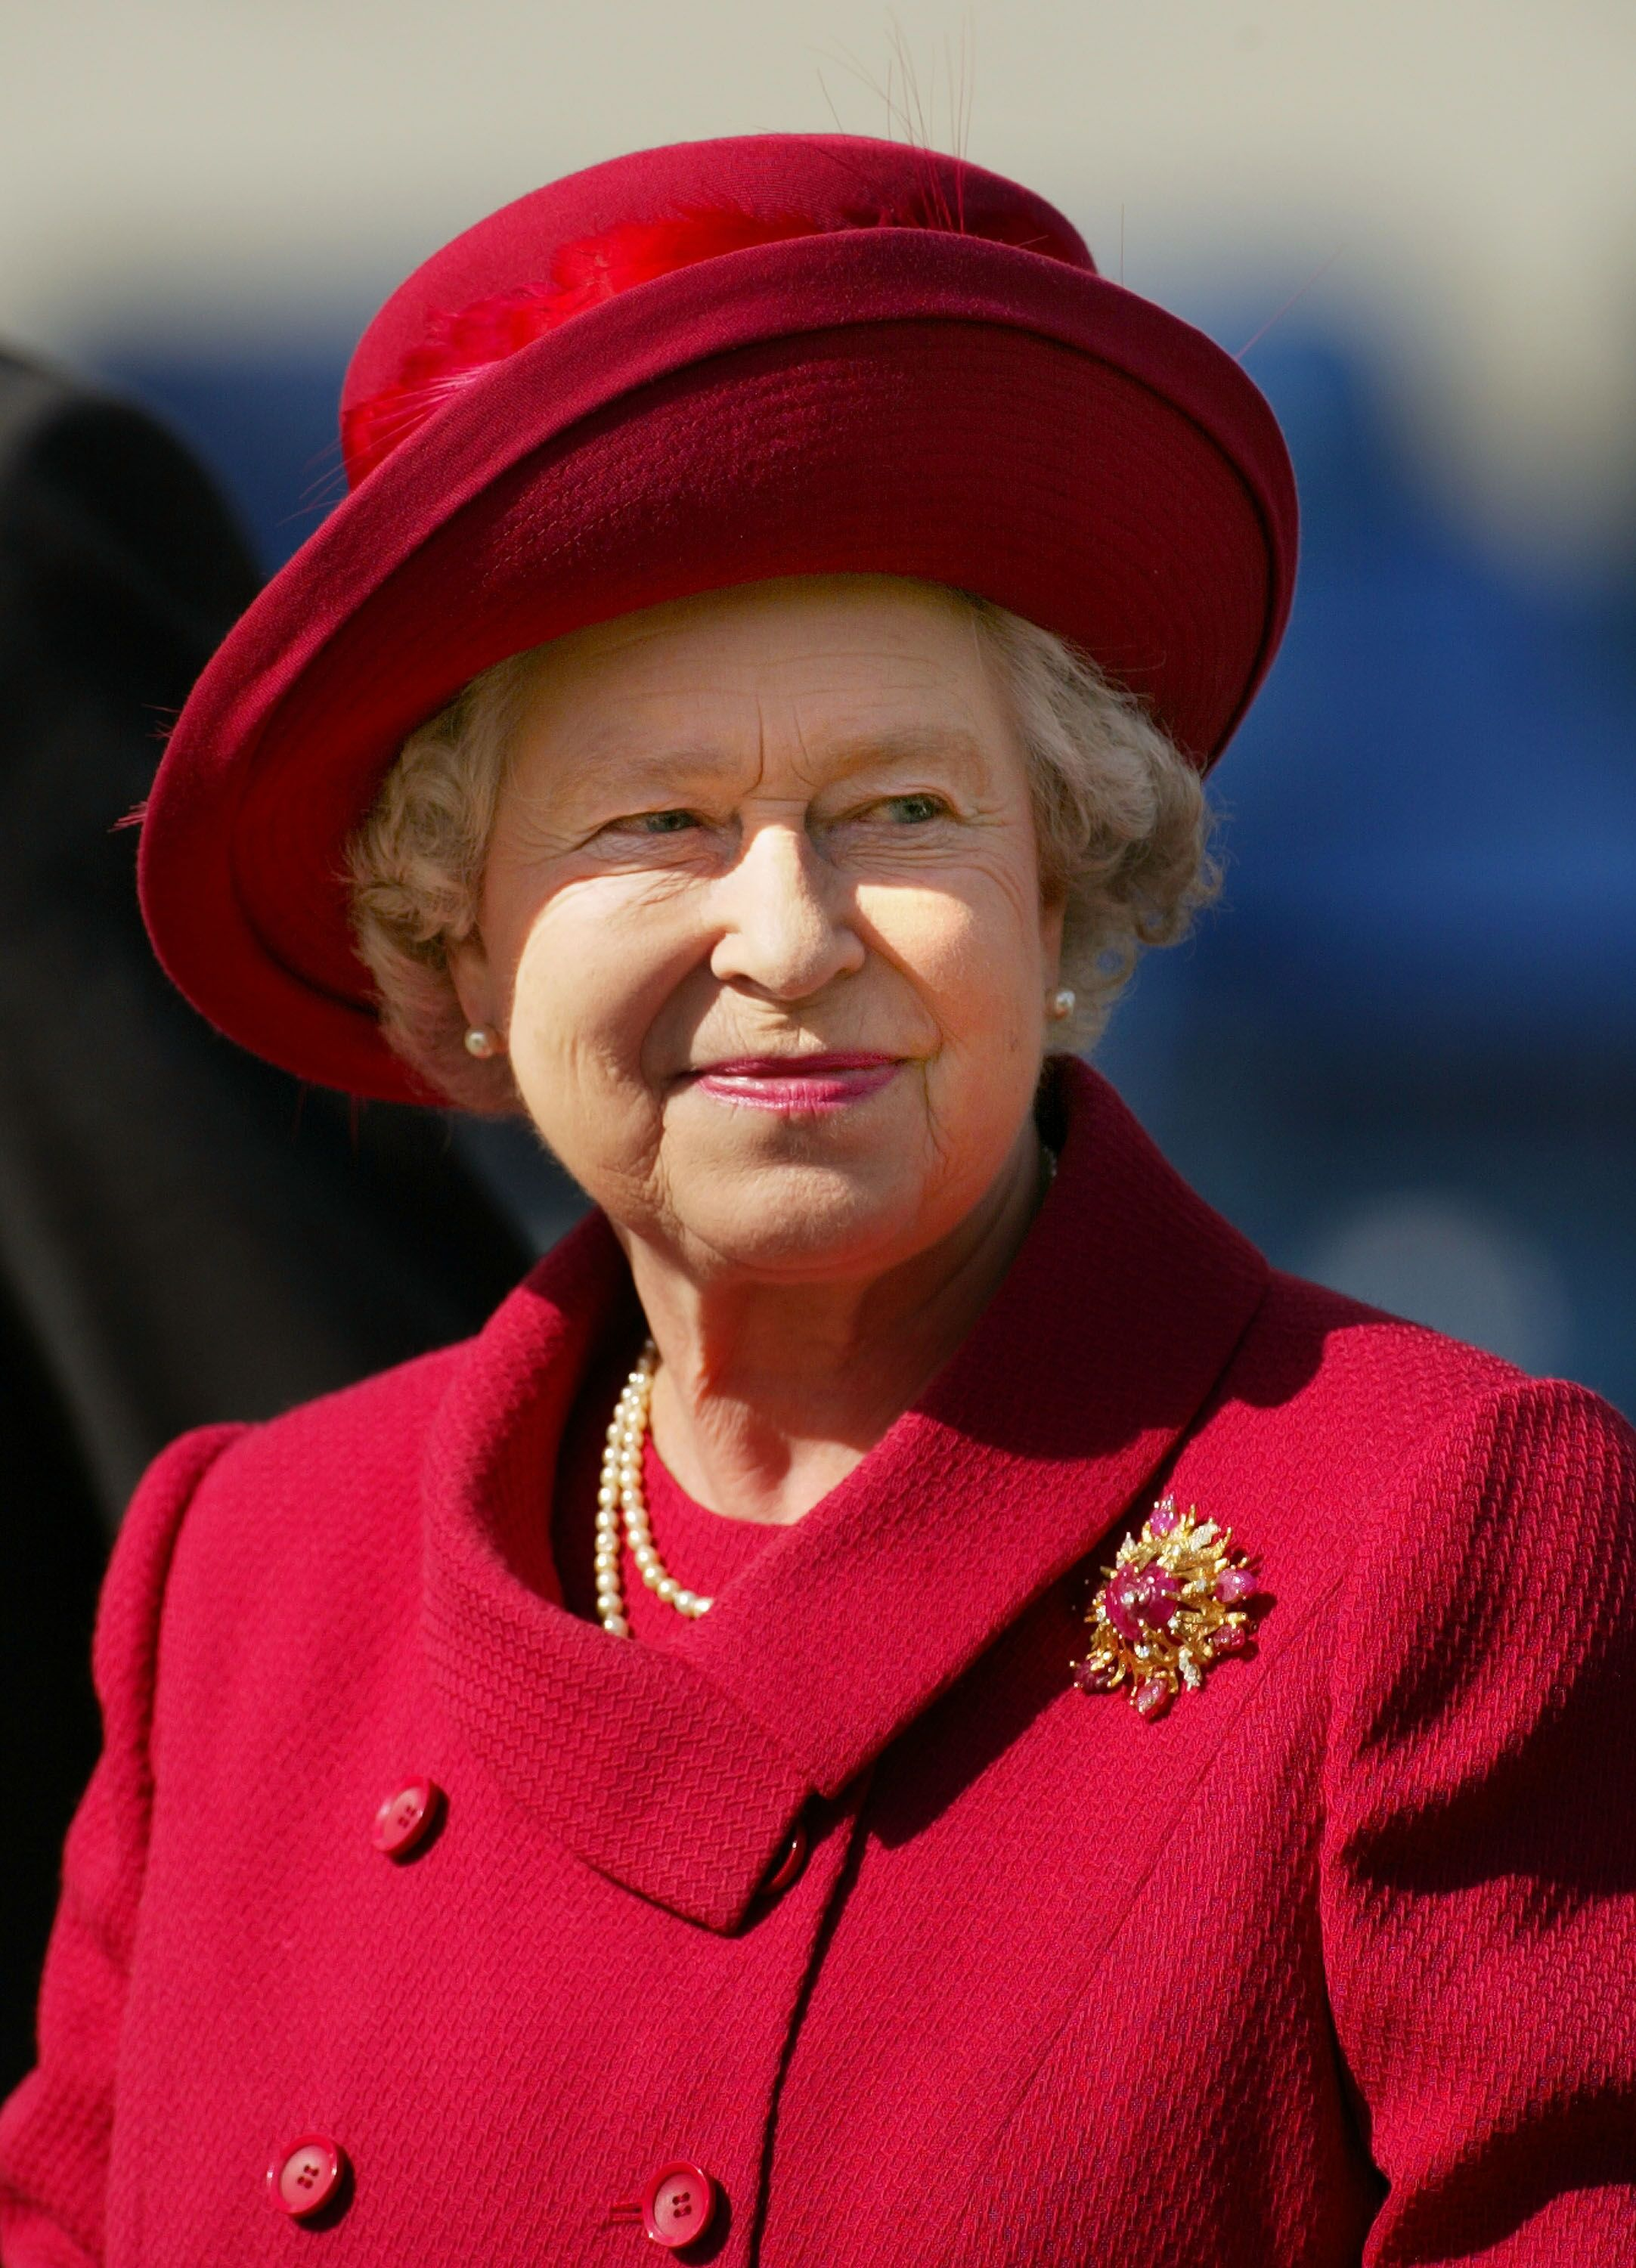 Queen Elizabeth II attending The Royal Windsor Horse Show at Windsor Park on May 18, 2002. | Photo: Getty Images.